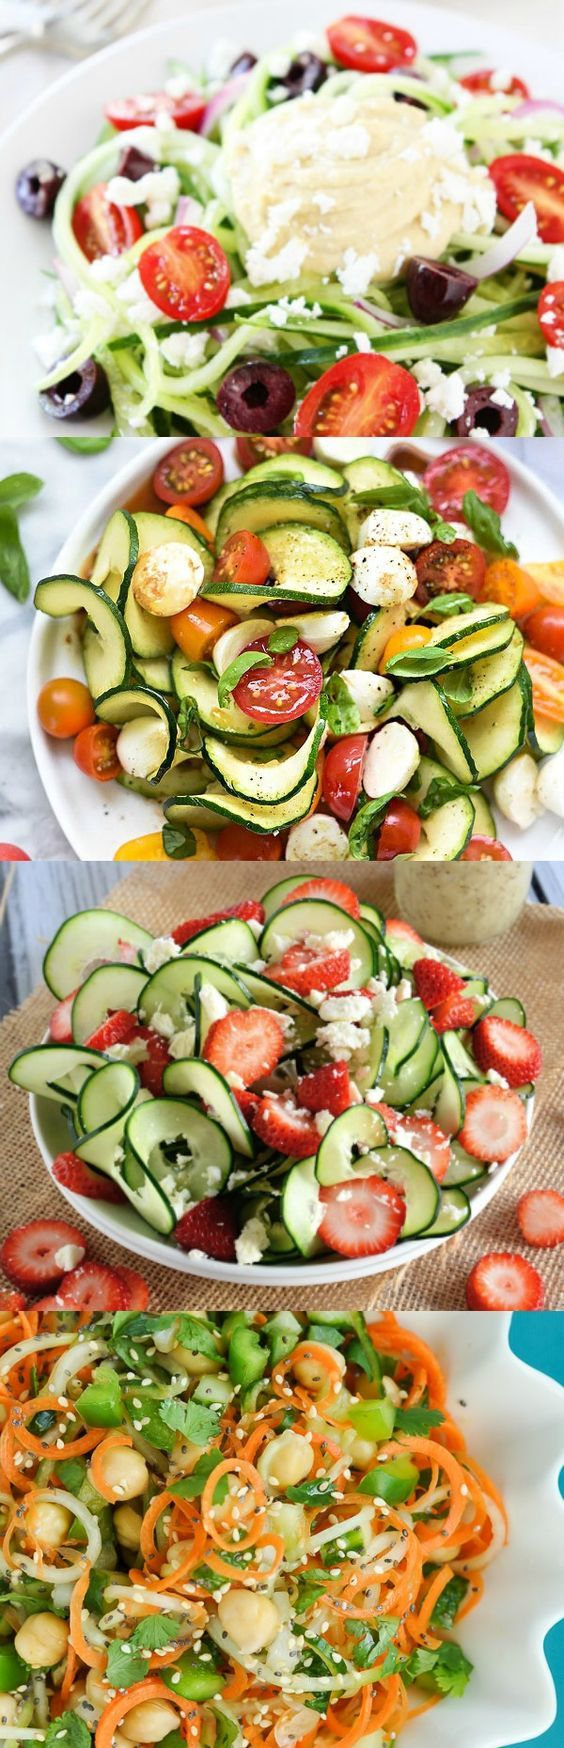 Whether you're gluten free or looking for healthy alternatives to your favorite comfort foods, vegetables and fruits shaped like noodles will make any meal special - These spiralized salads are awesome!